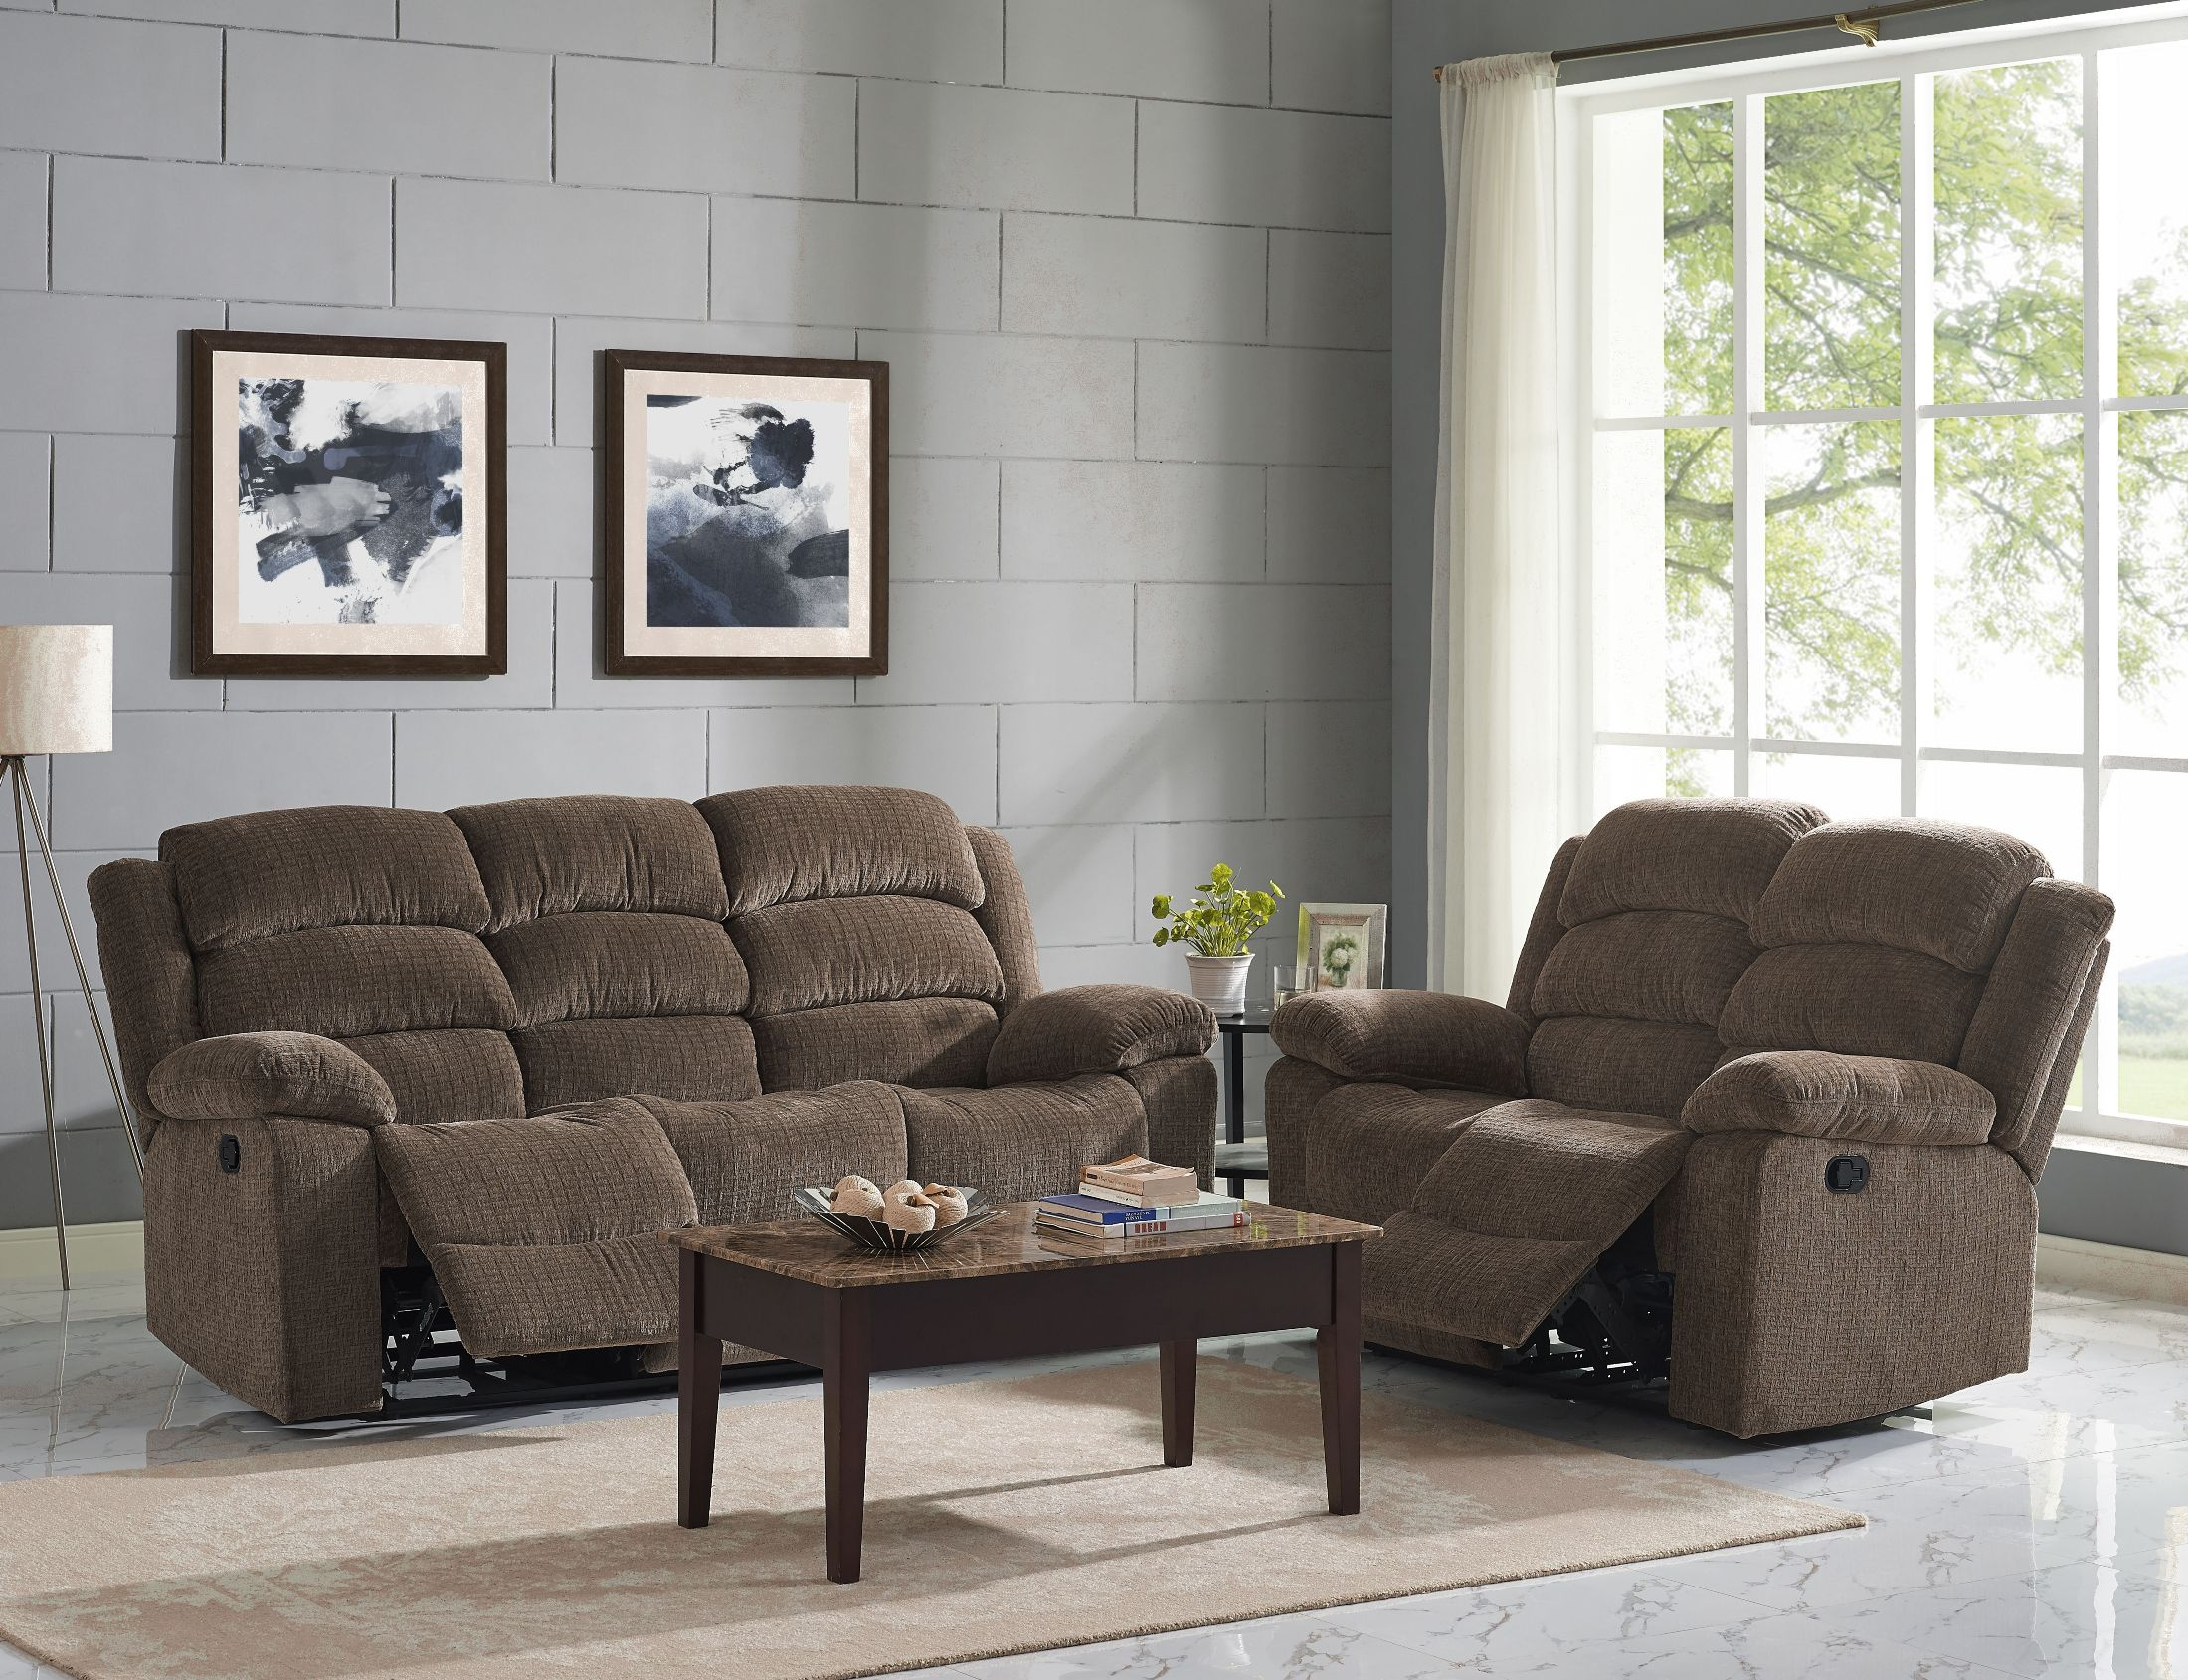 Laura Chocolate Reclining Sectional From New Classic Coleman Furniture Austin Wedges Meagan Brown Cokelat 40 Power Living Room Set With Headrest